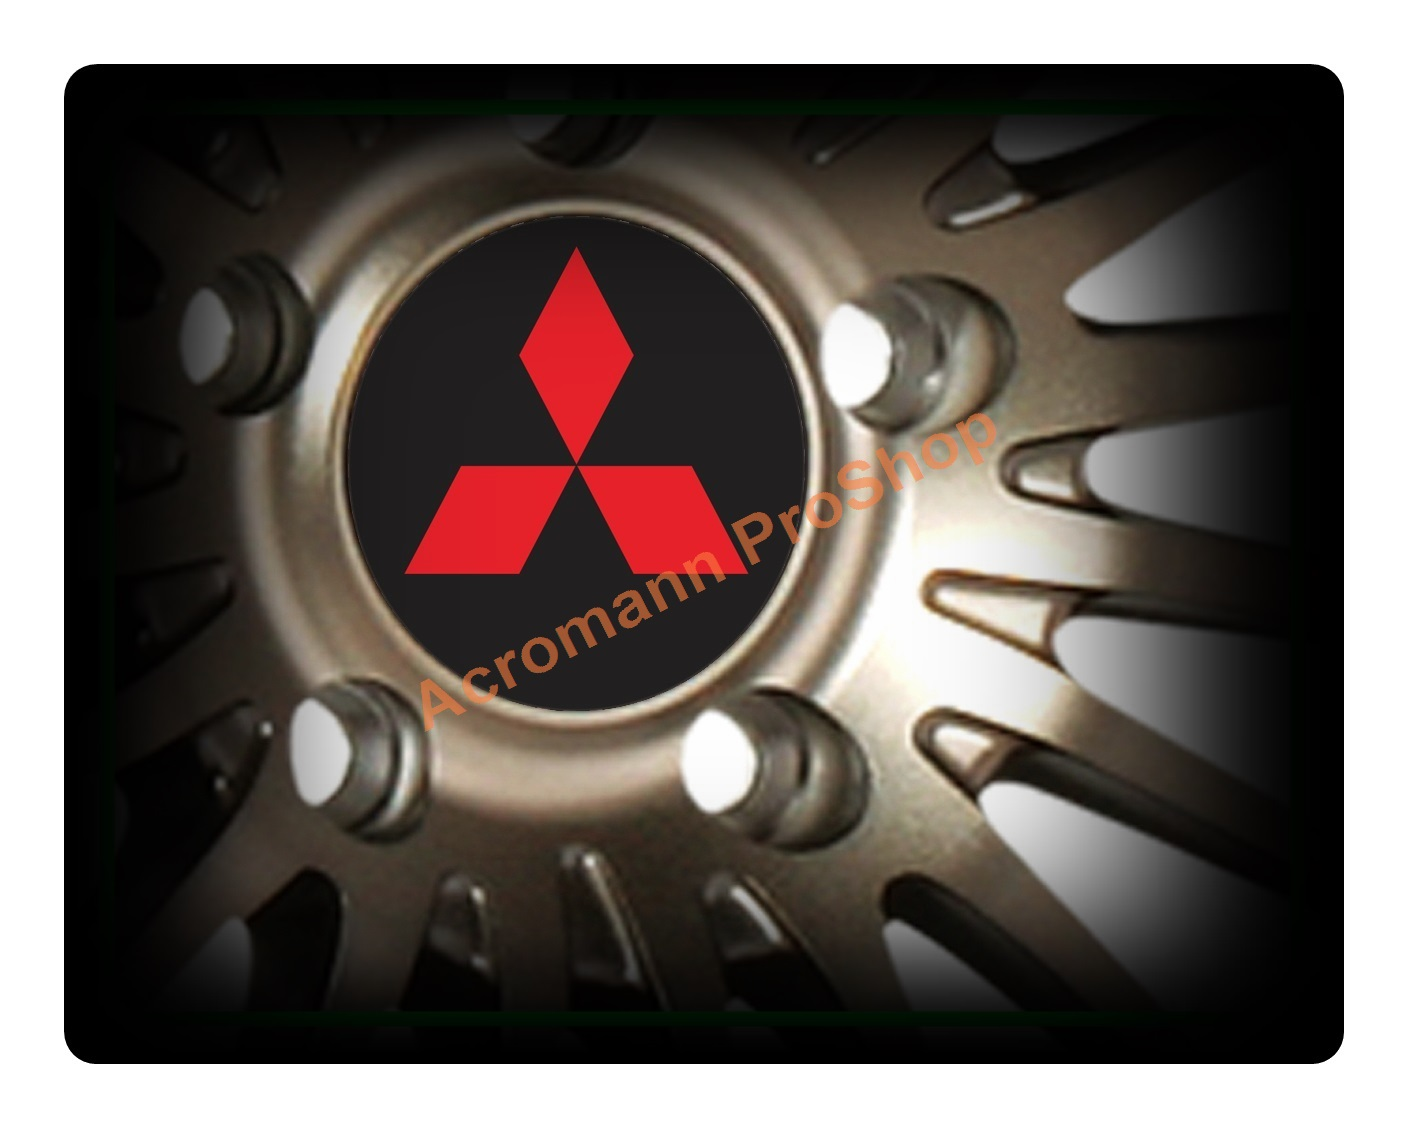 Mitsubishi Printed 2.2inch Wheel Cap Decal x 4 pcs